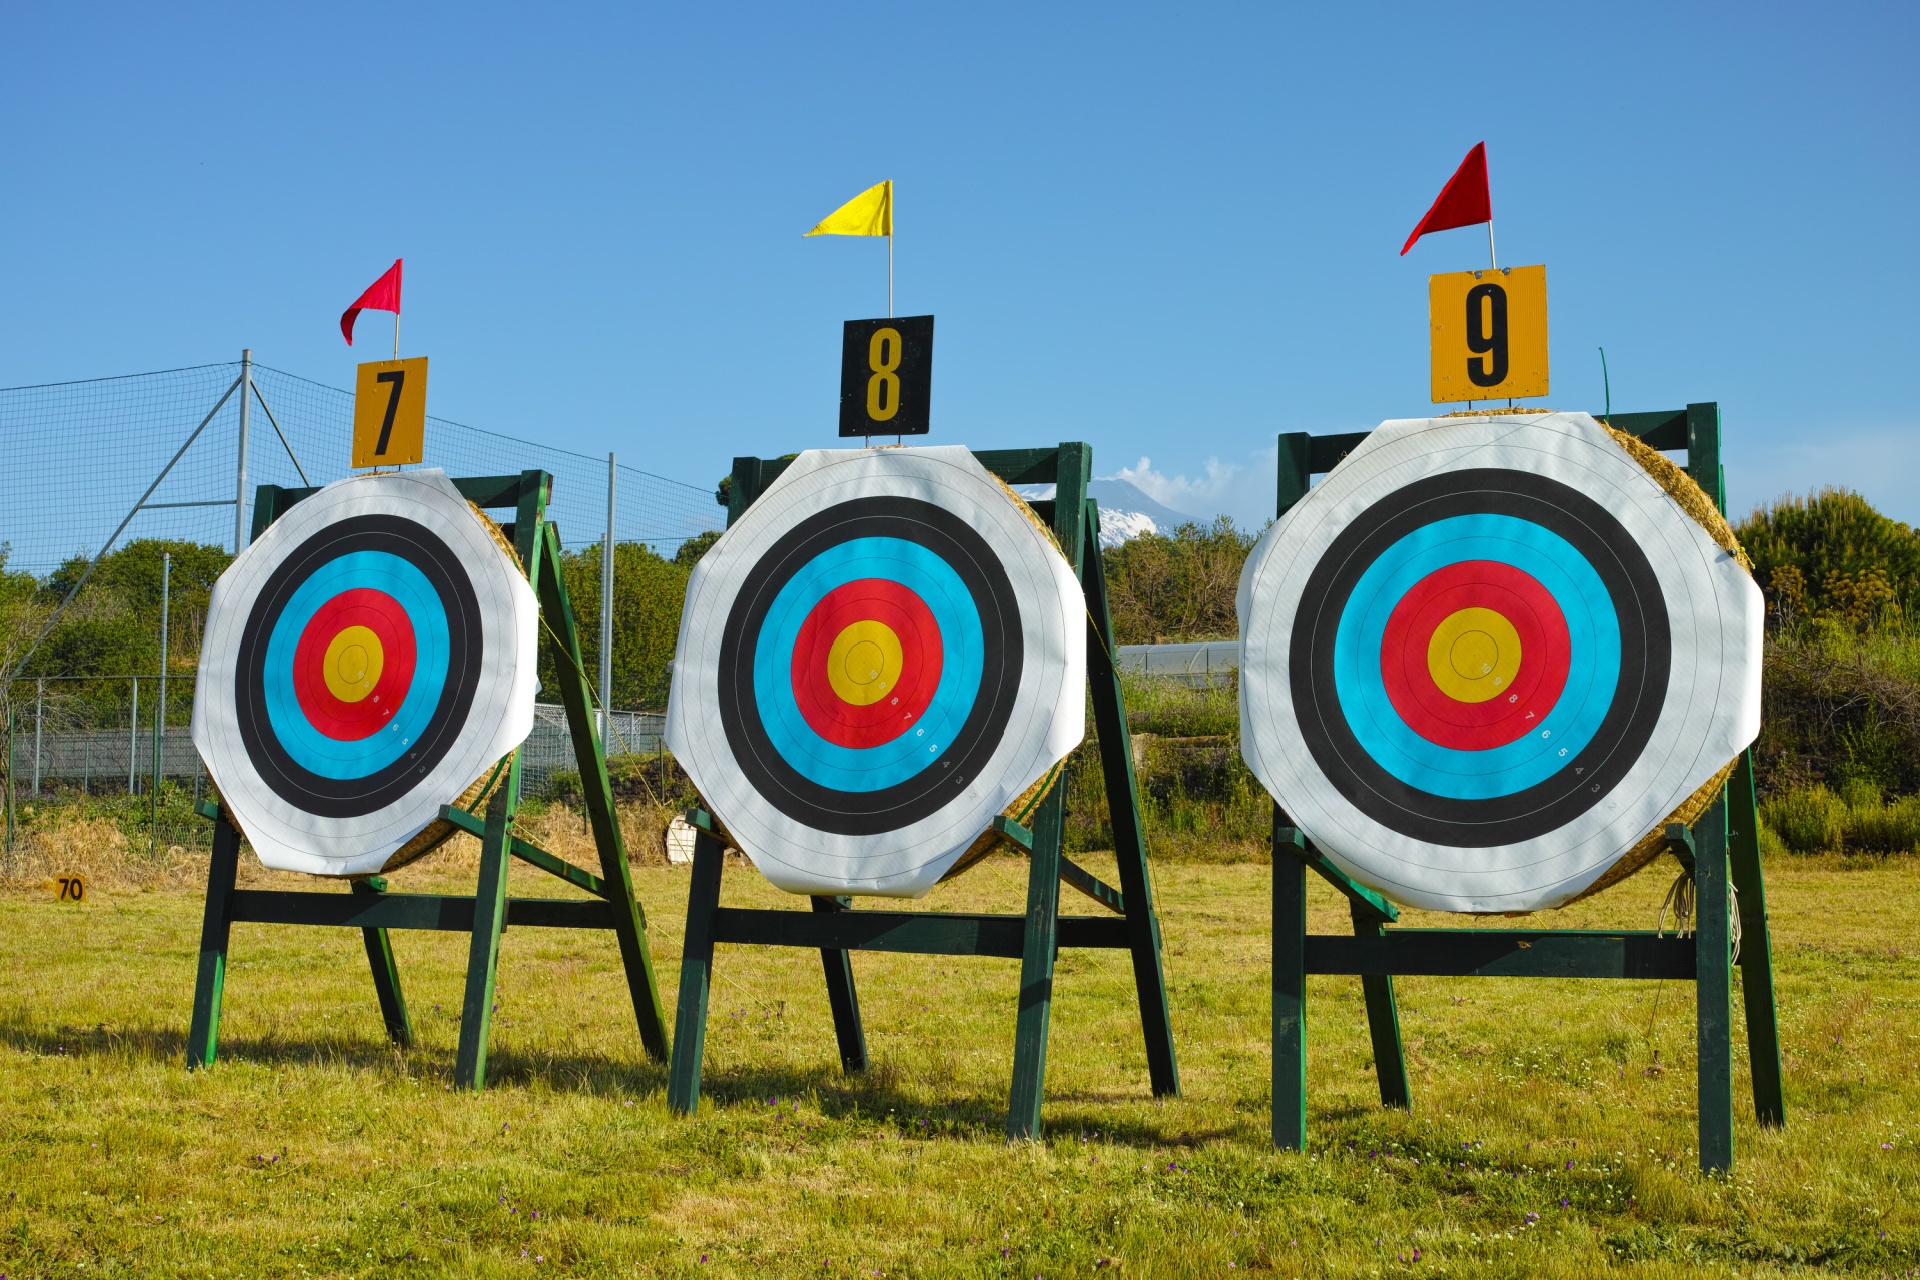 Best places for Archery for Kids in Florida